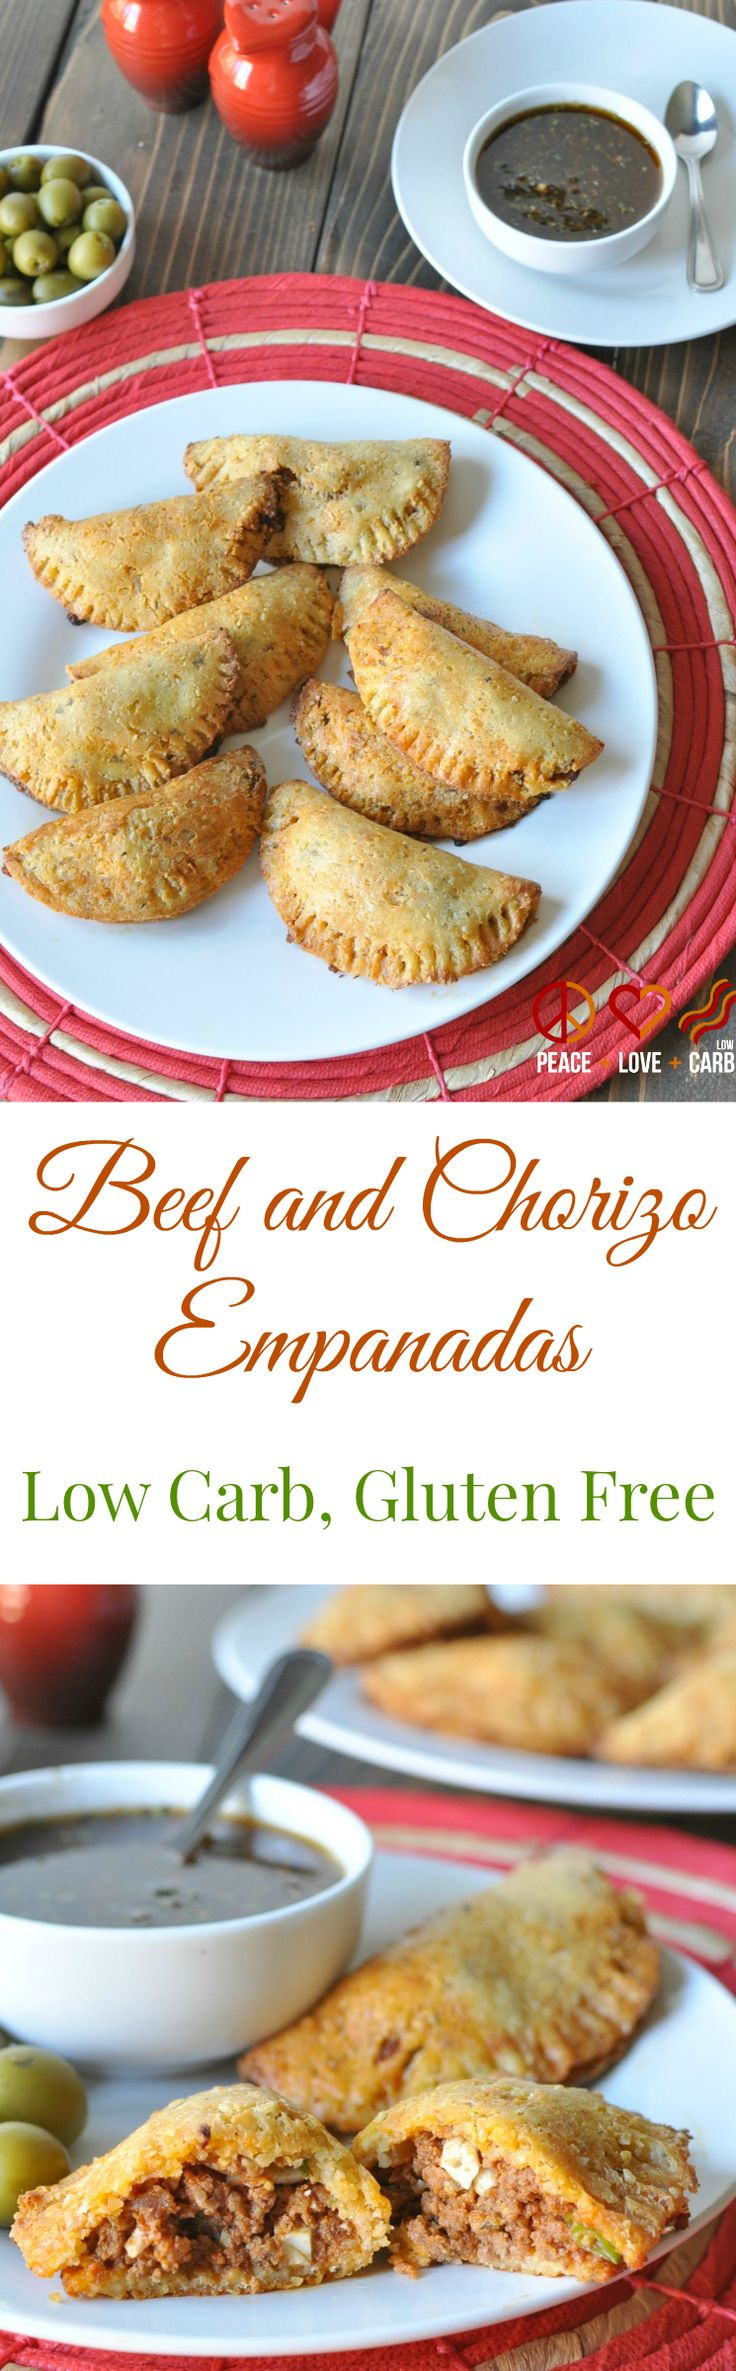 Beef and Chorizo Empanadas - Low Carb and Gluten Free | Peace Love and Low Carb | peaceloveandlowcarb.com